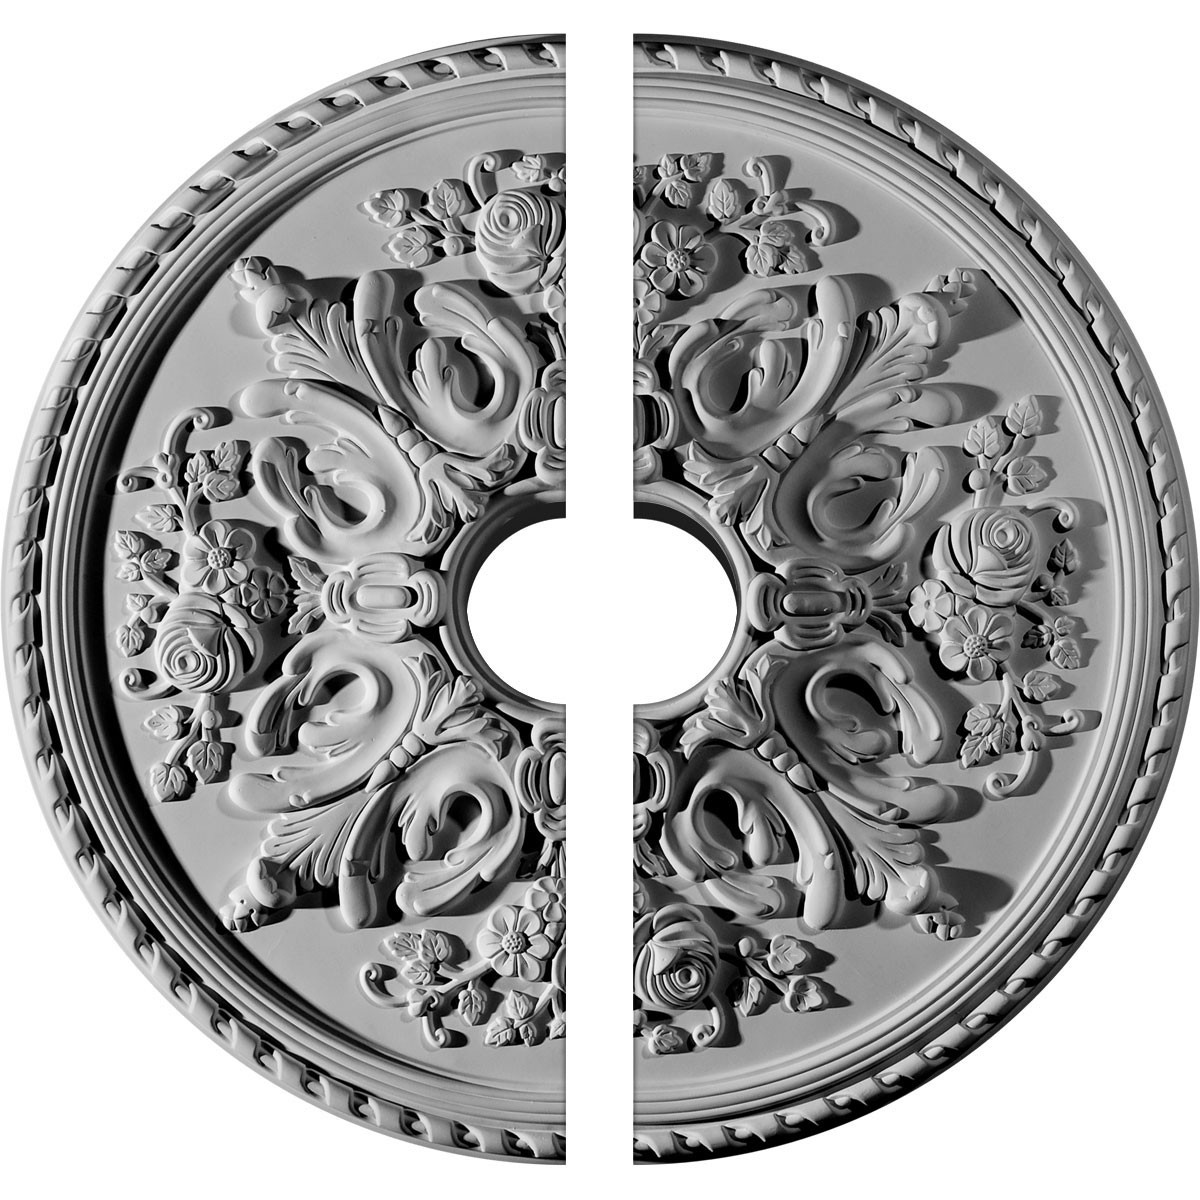 """EM-CM32BR2-06000 - 32 5/8""""OD x 6""""ID x 2""""P Bradford Ceiling Medallion, Two Piece (Fits Canopies up to 6 5/8"""")"""